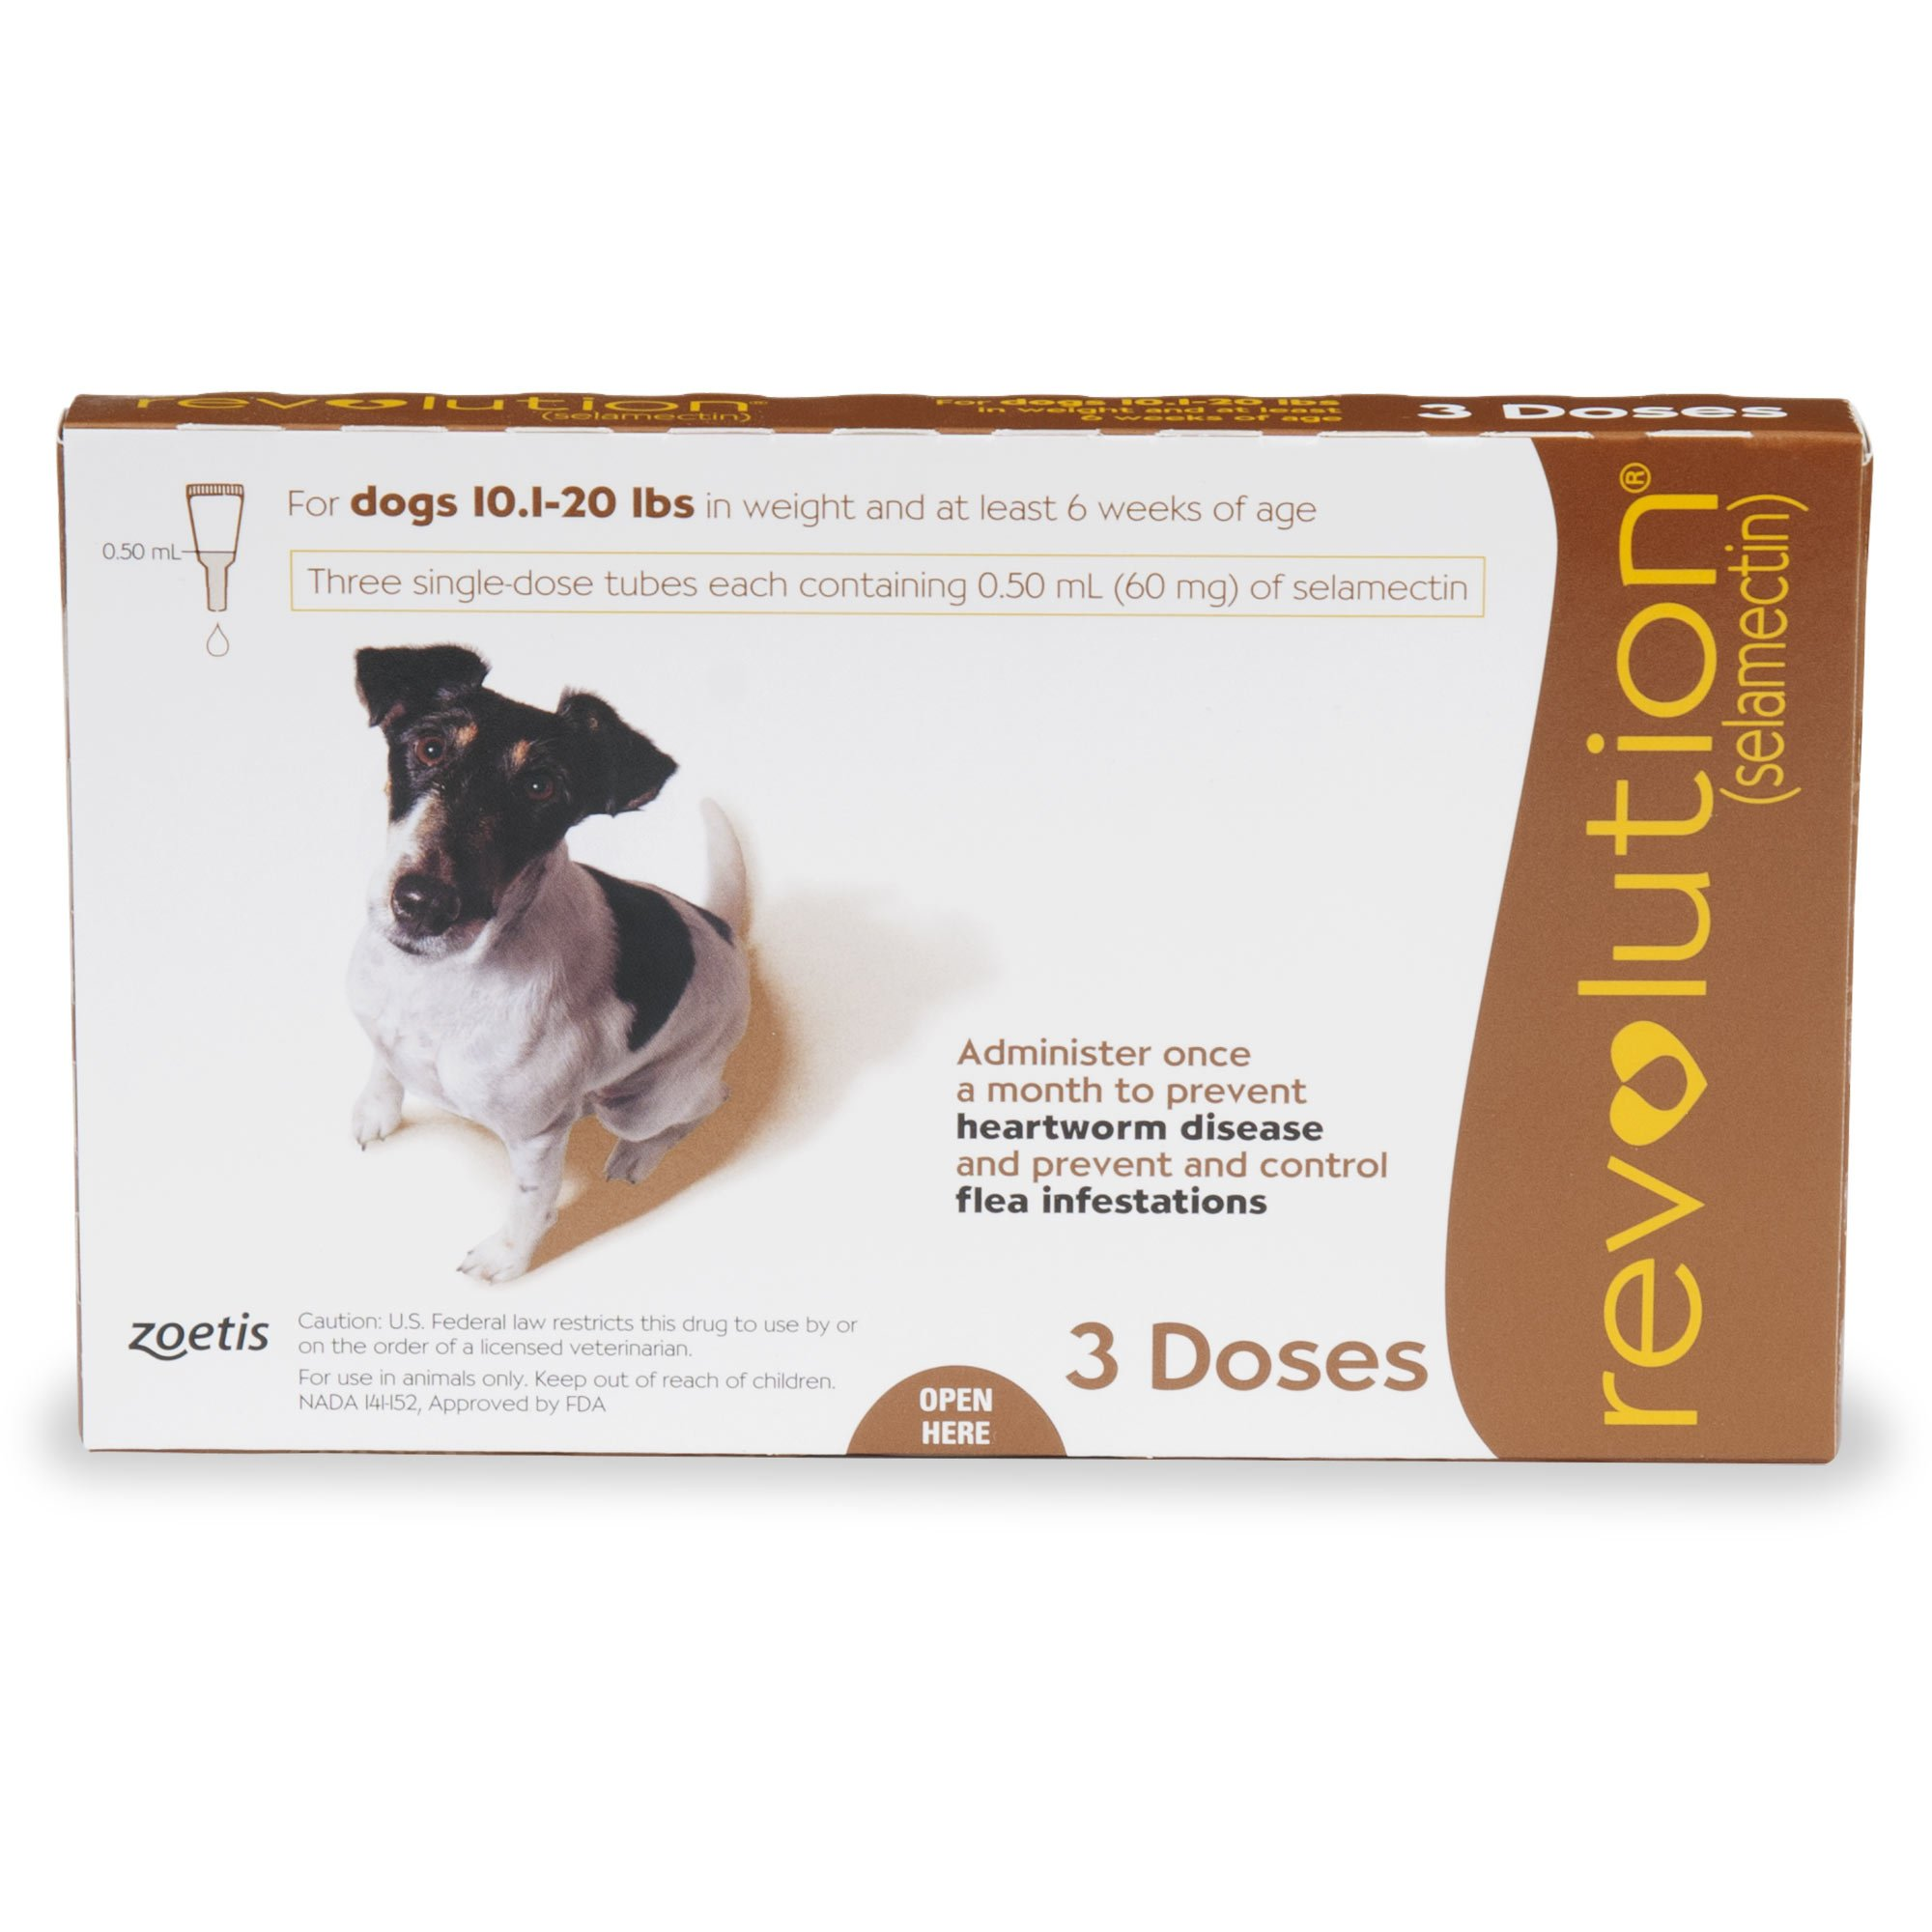 a5798006cebf6 Revolution Topical Solution for Dogs 10.1-20 lbs. - Brown | Petco